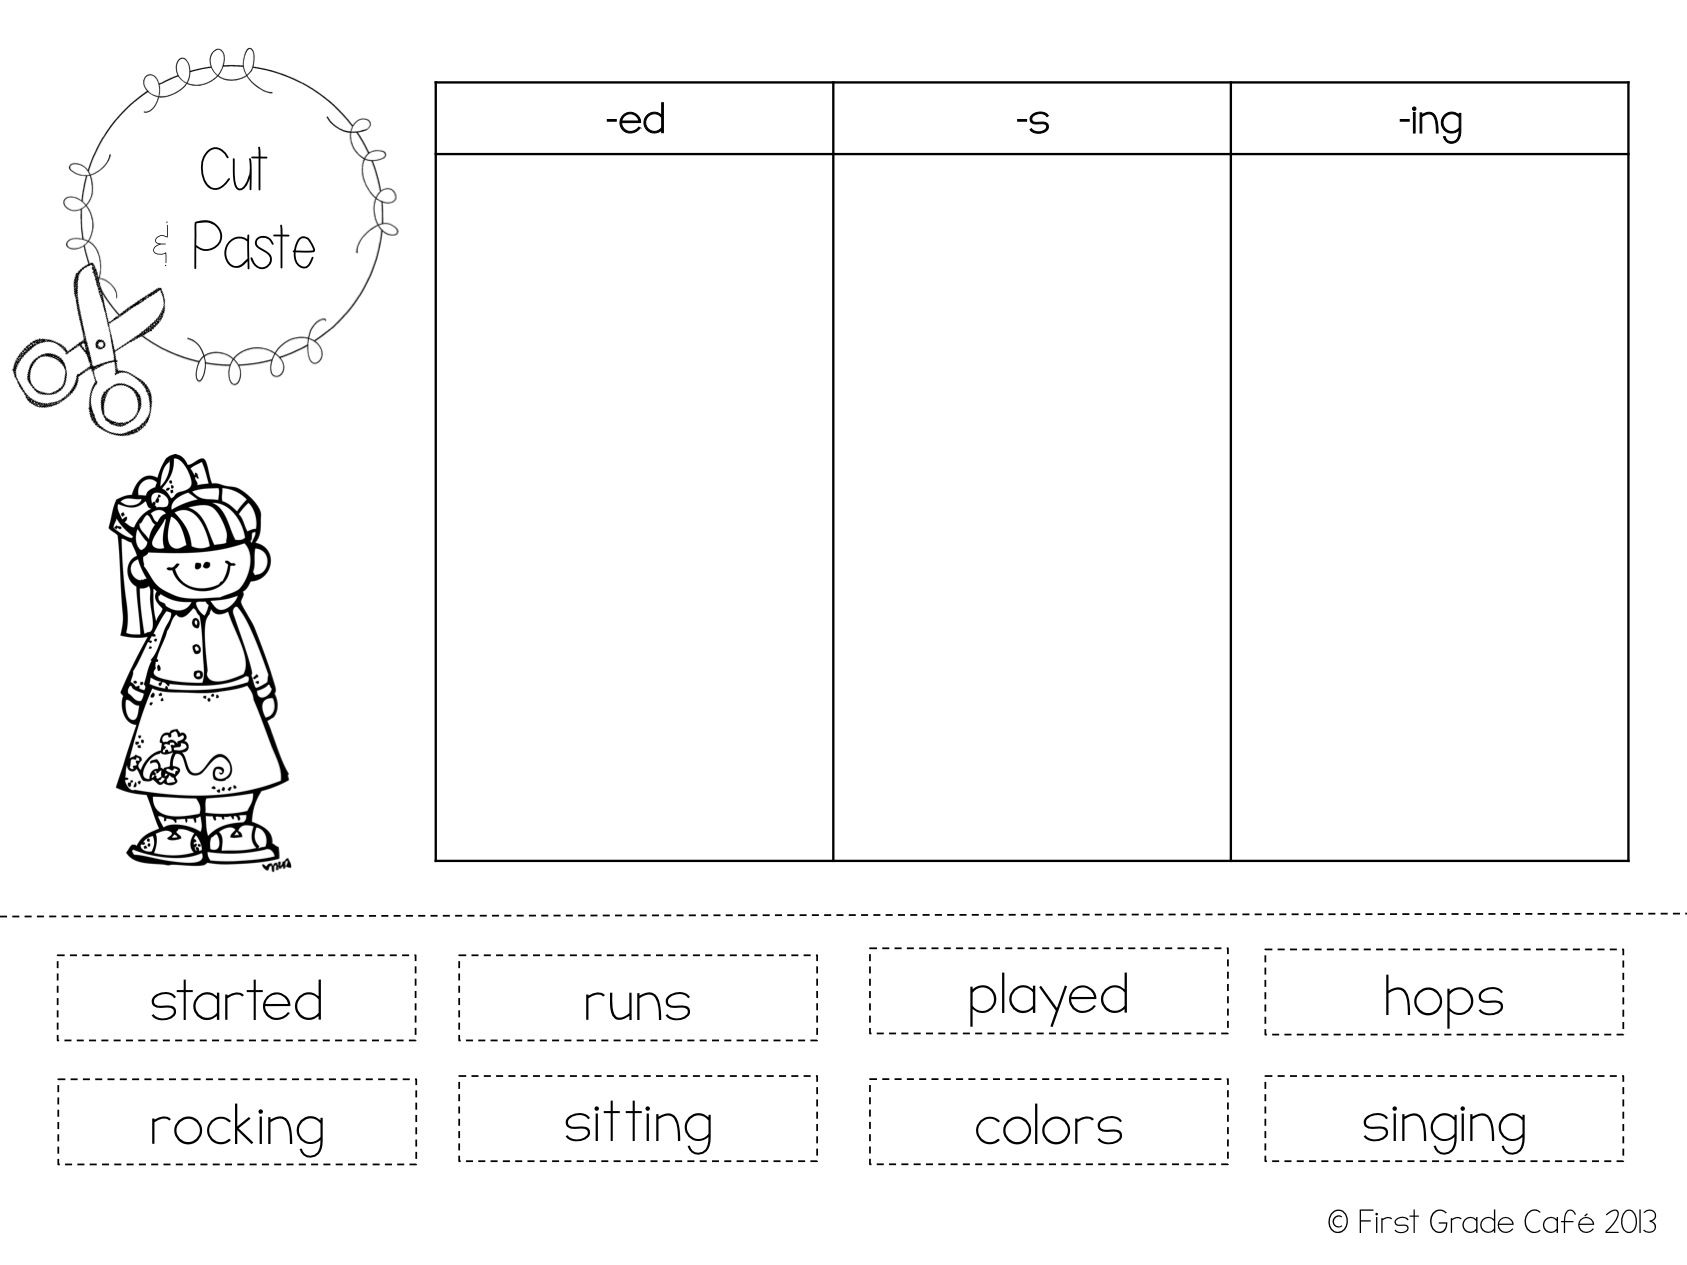 hight resolution of Verbs Cut And Paste Worksheet   Printable Worksheets and Activities for  Teachers